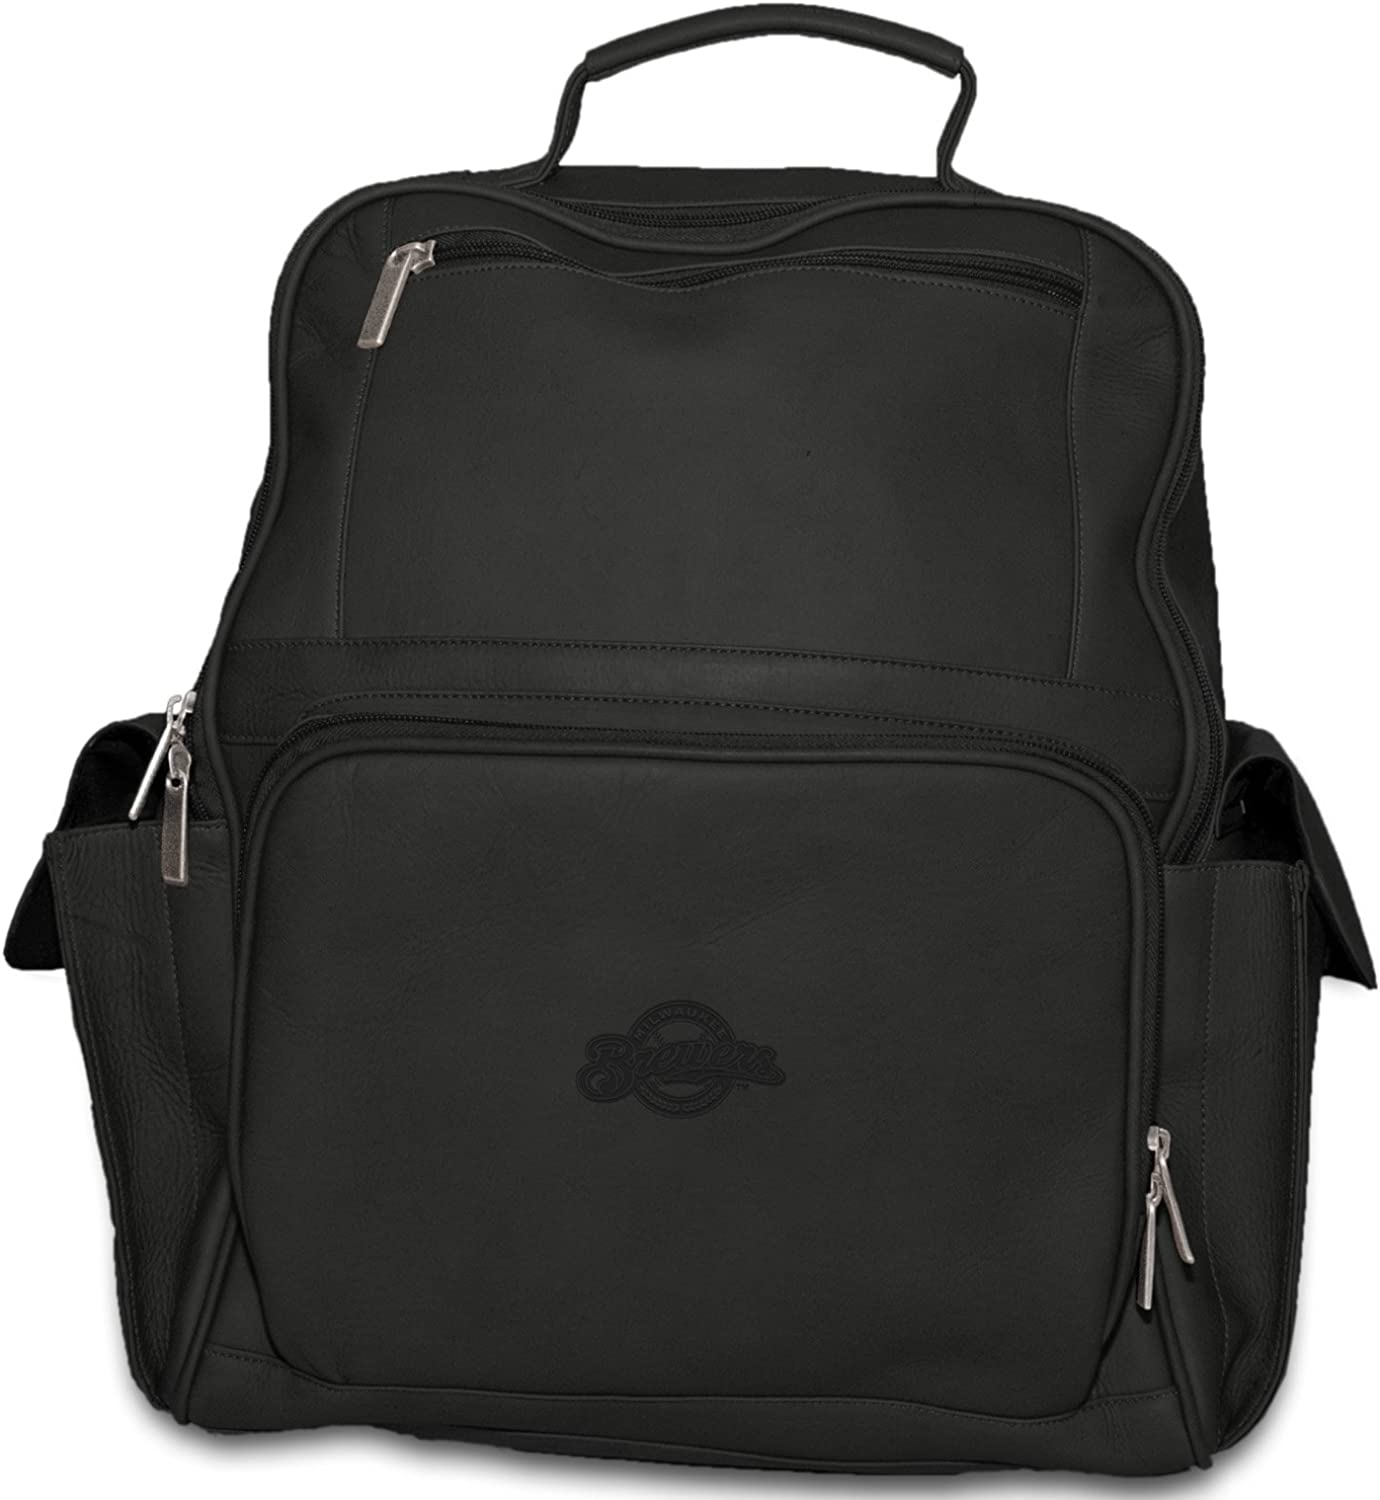 MLB Black Leather Ranking We OFFer at cheap prices TOP10 Computer Backpack Large